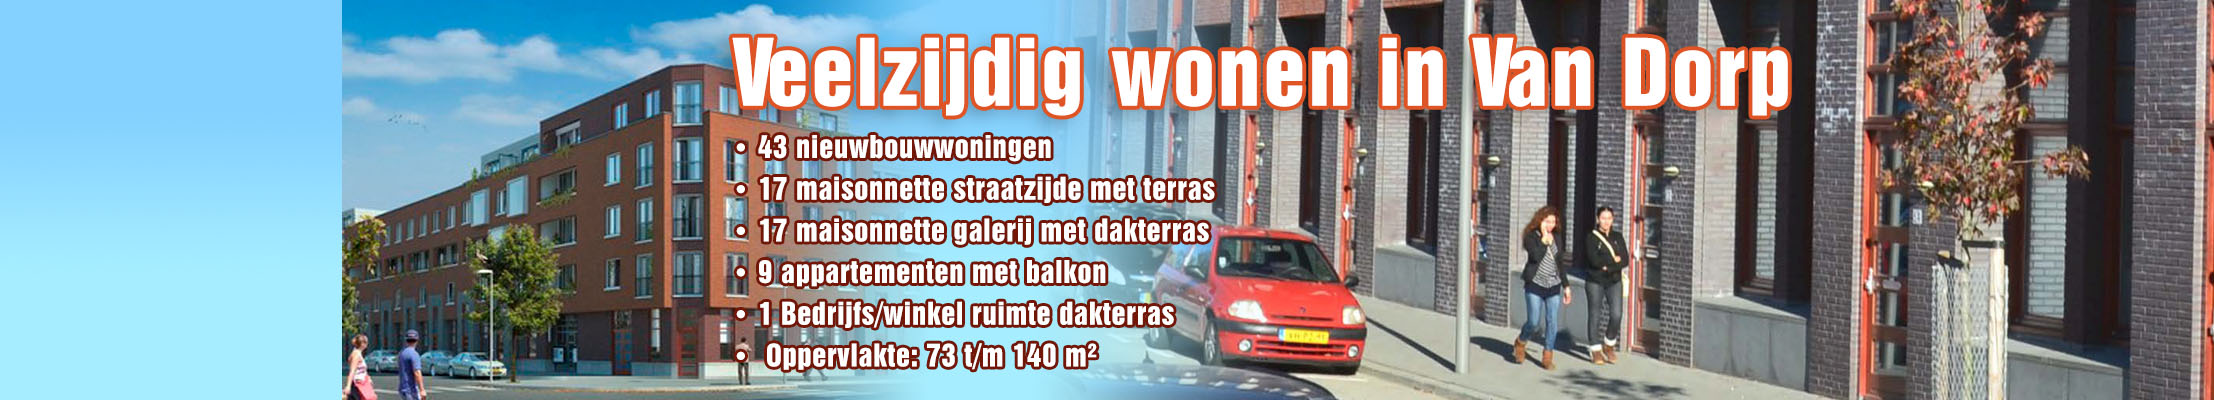 banner-mathenesserdijk-2